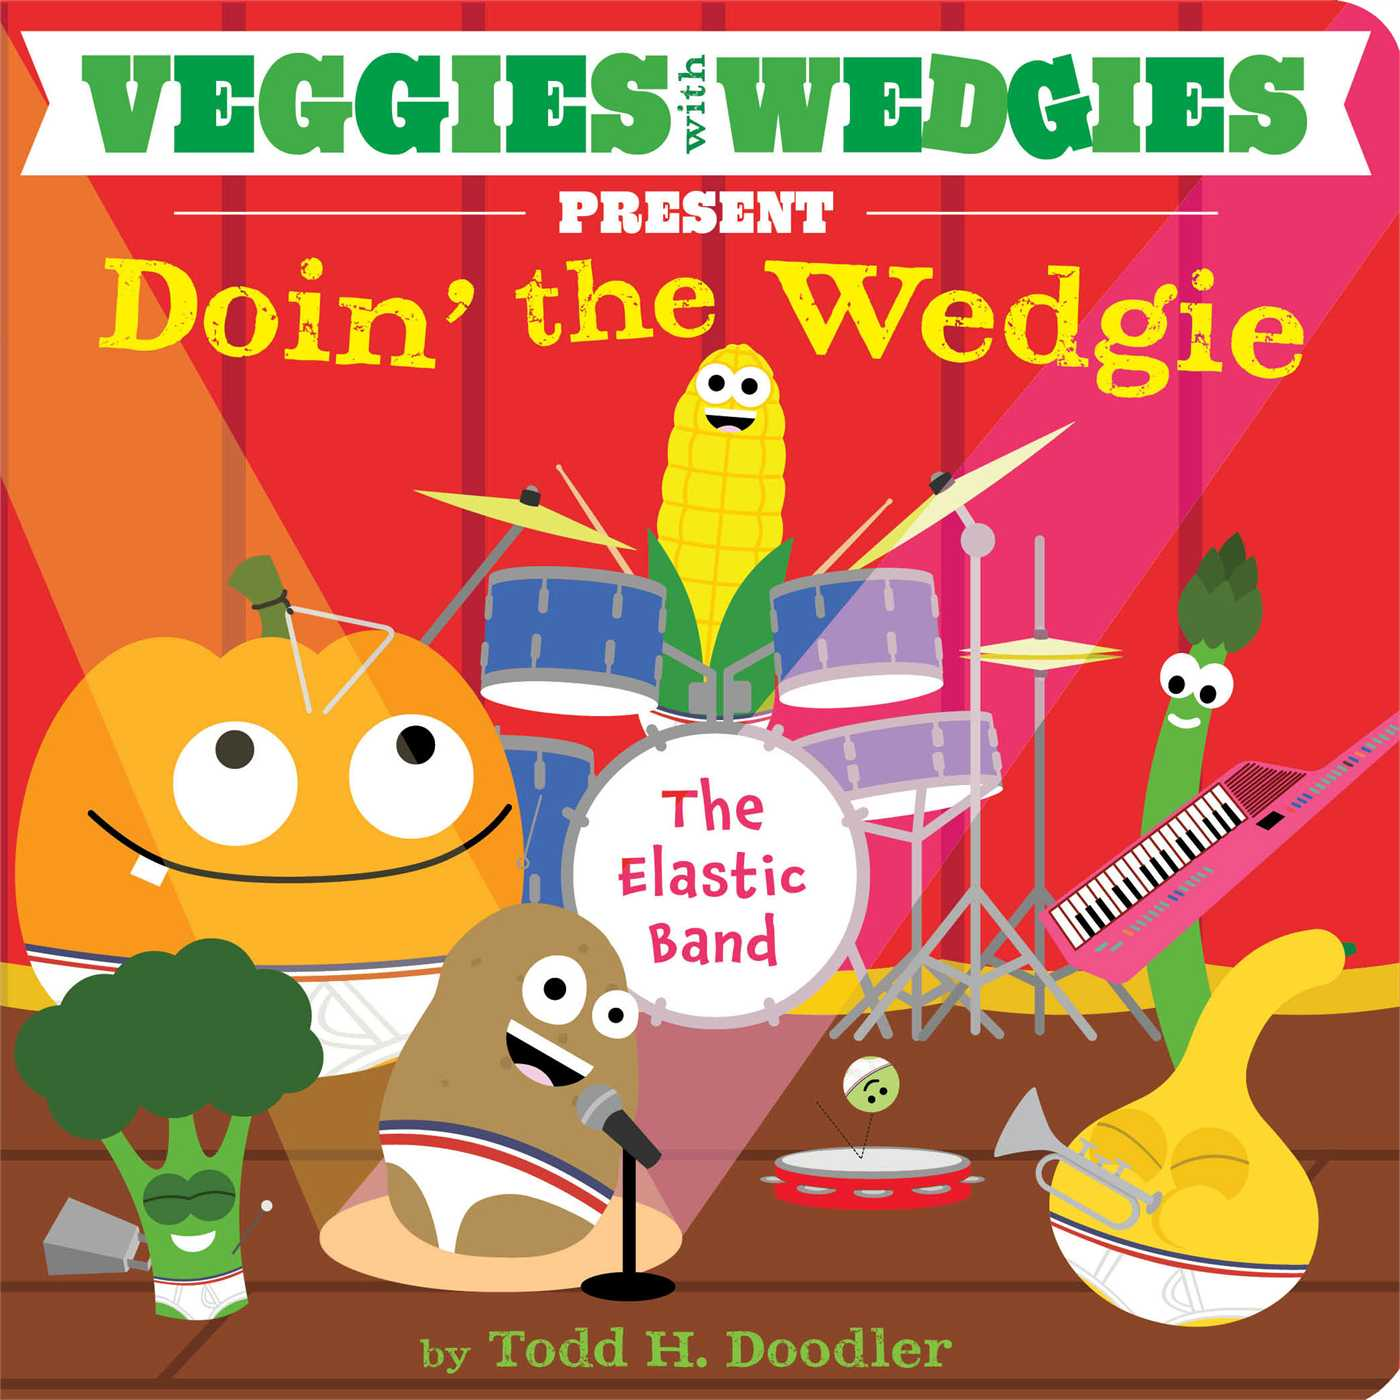 Veggies-with-wedgies-present-doin-the-wedgie-9781442493513_hr